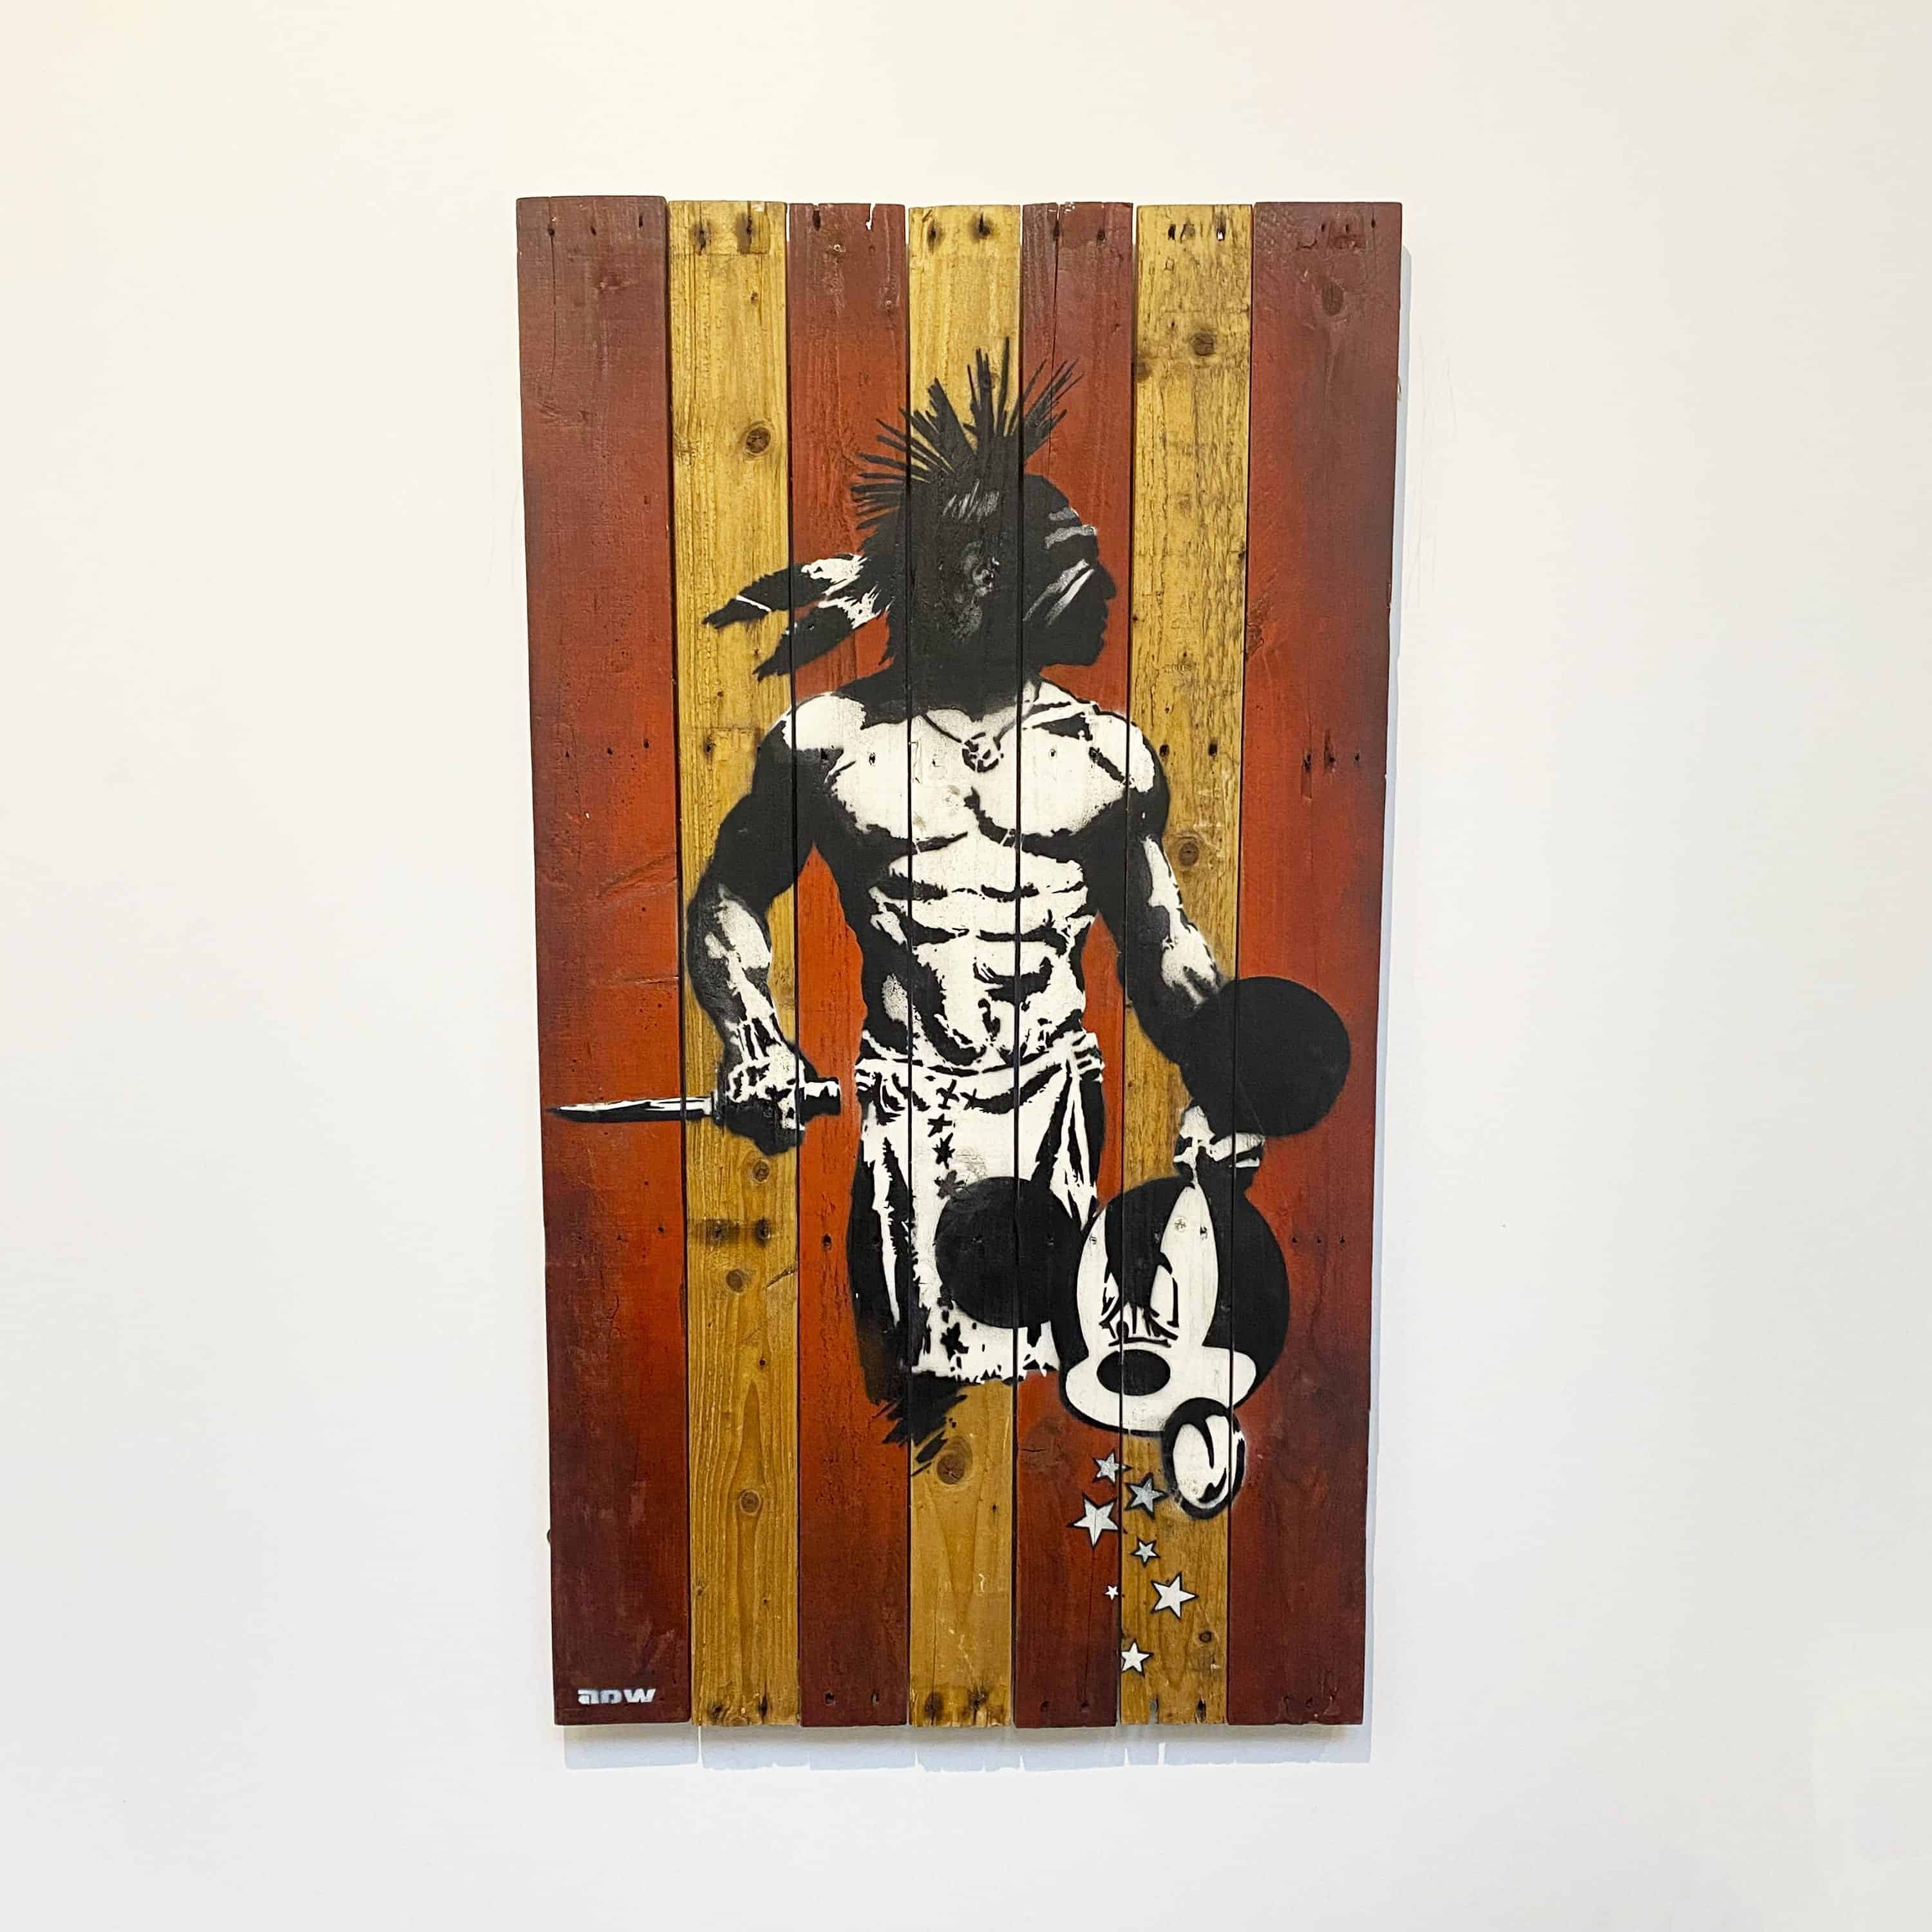 adw art original scalped on wood designyard contemporary art gallery dublin ireland